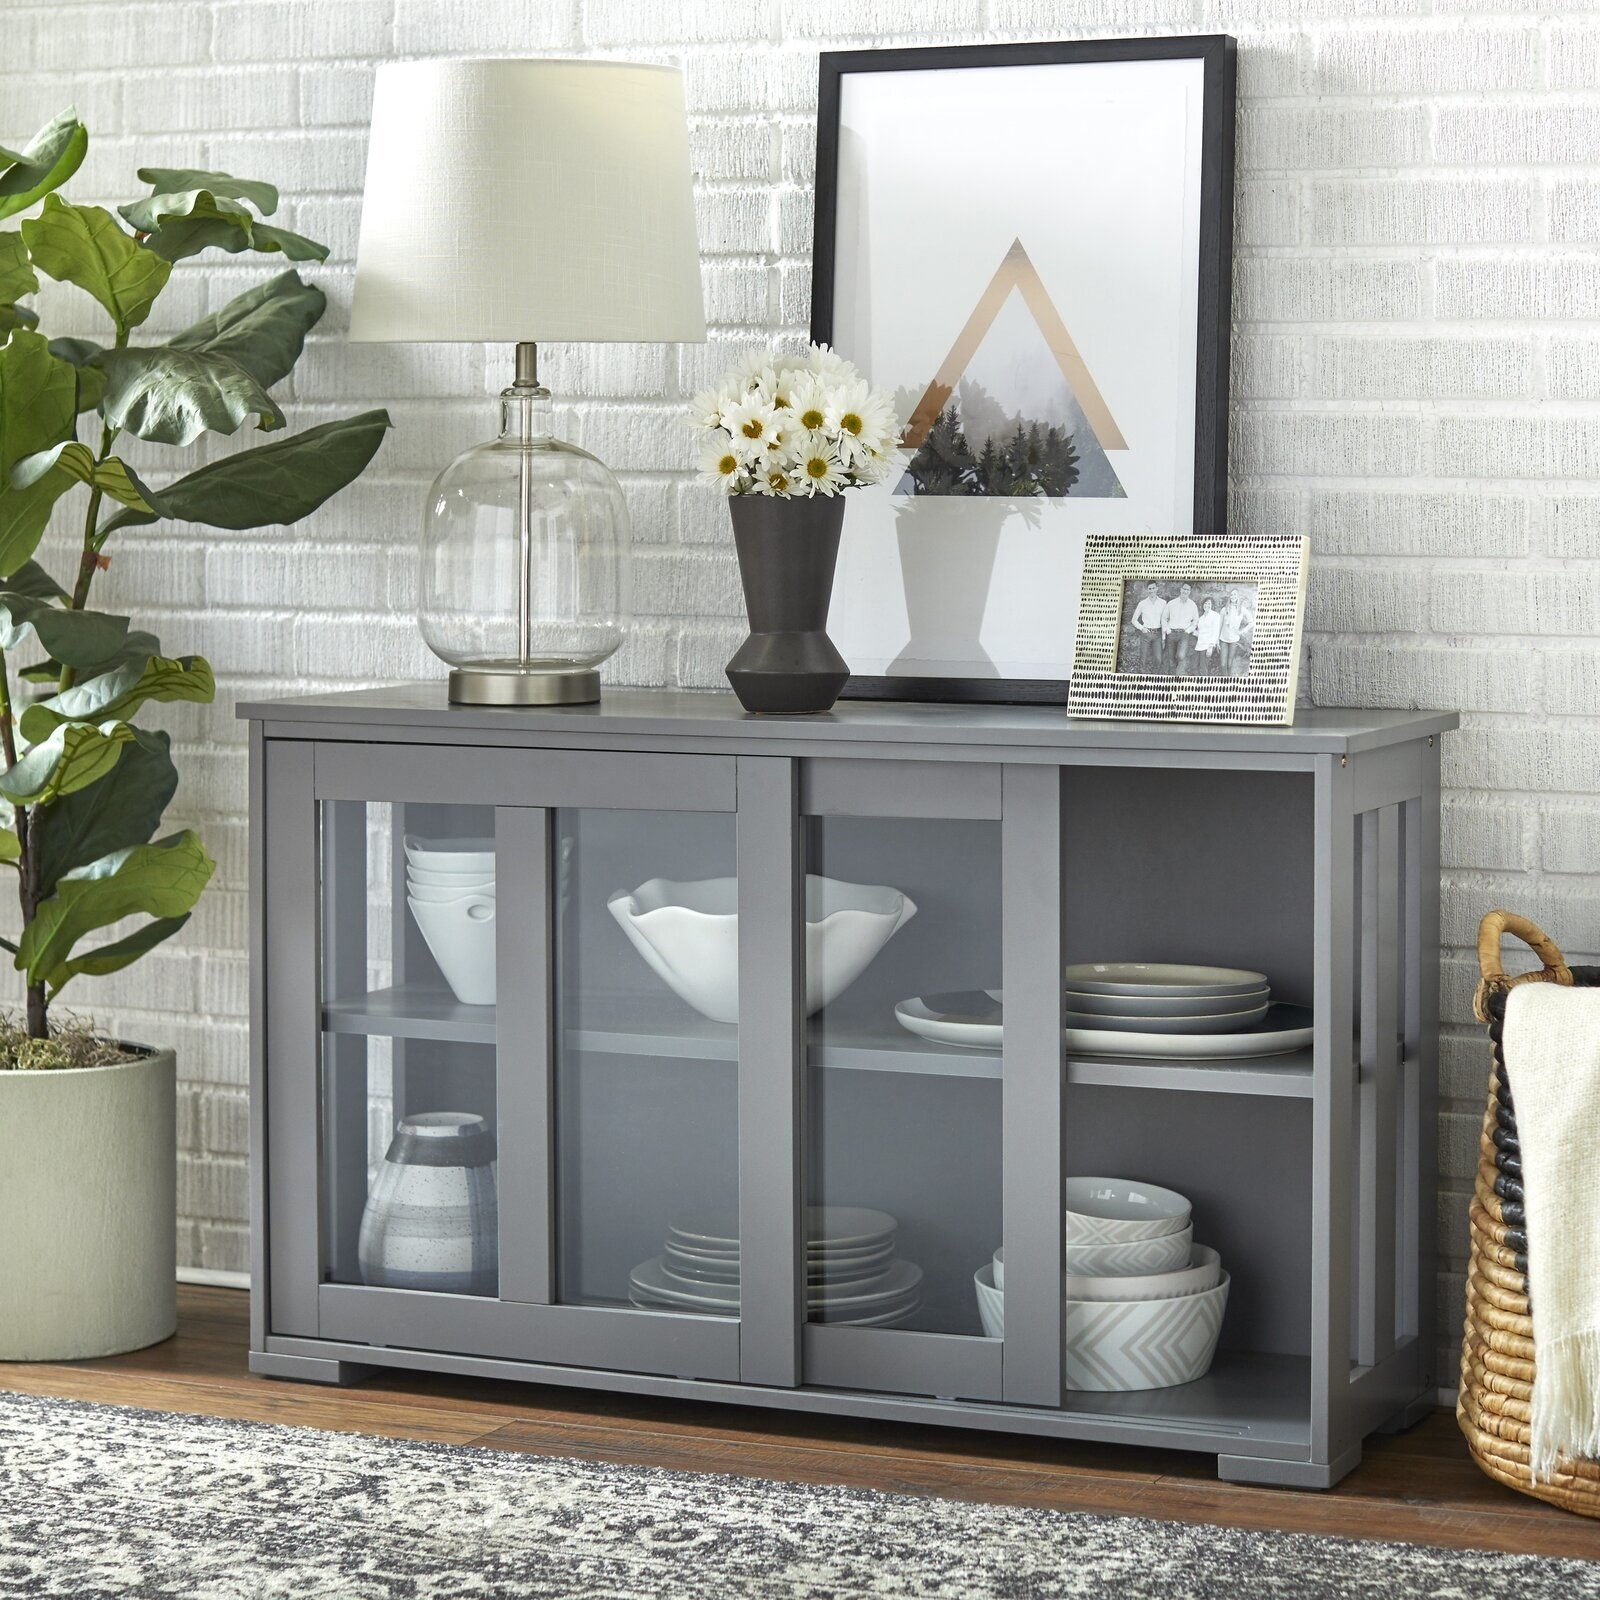 The sideboard, which has two internal shelves, and two sliding glass doors